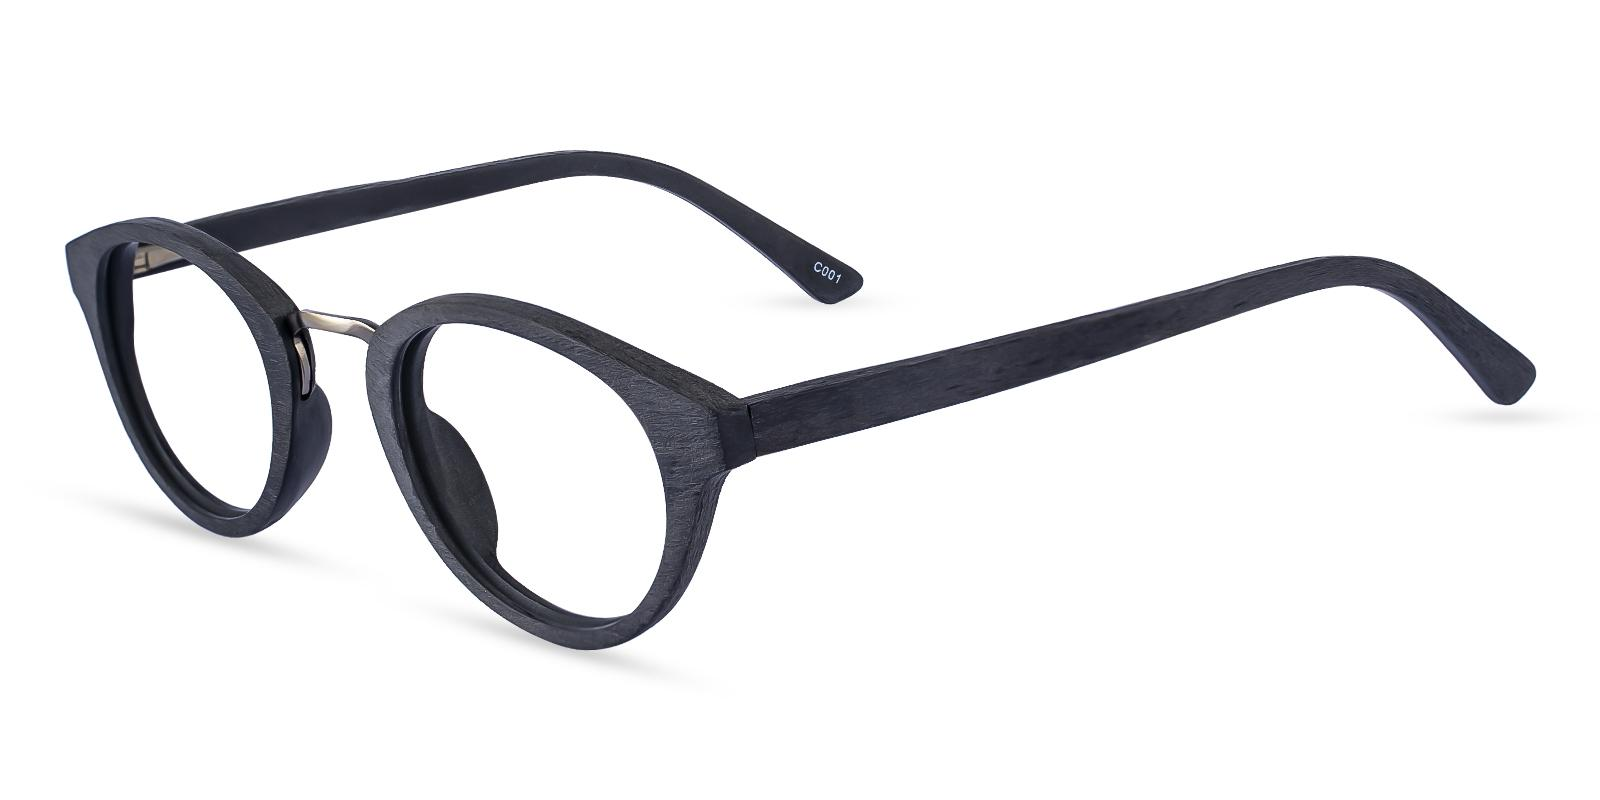 New Haven Black Acetate Eyeglasses , SpringHinges , UniversalBridgeFit Frames from ABBE Glasses